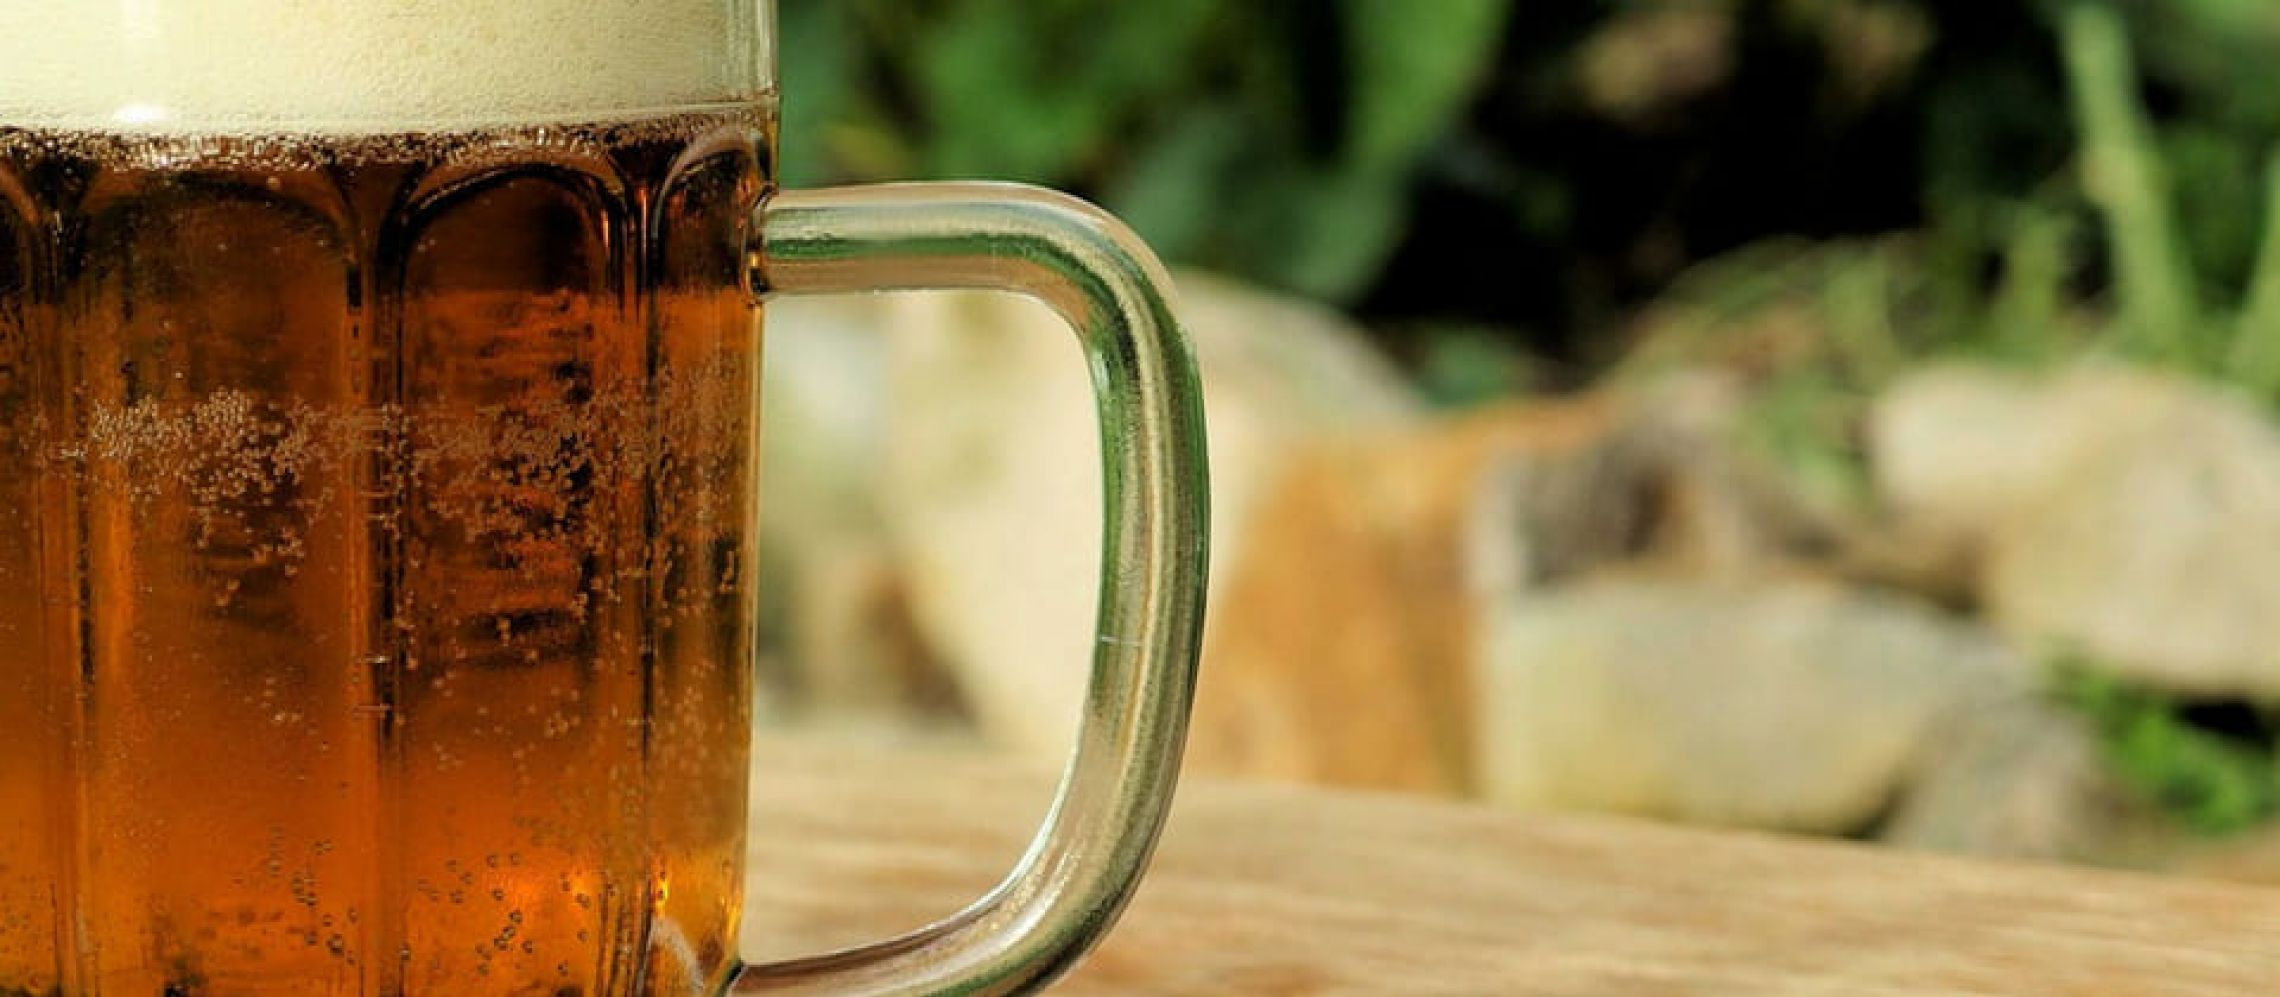 Photo for: Glassware for Beer